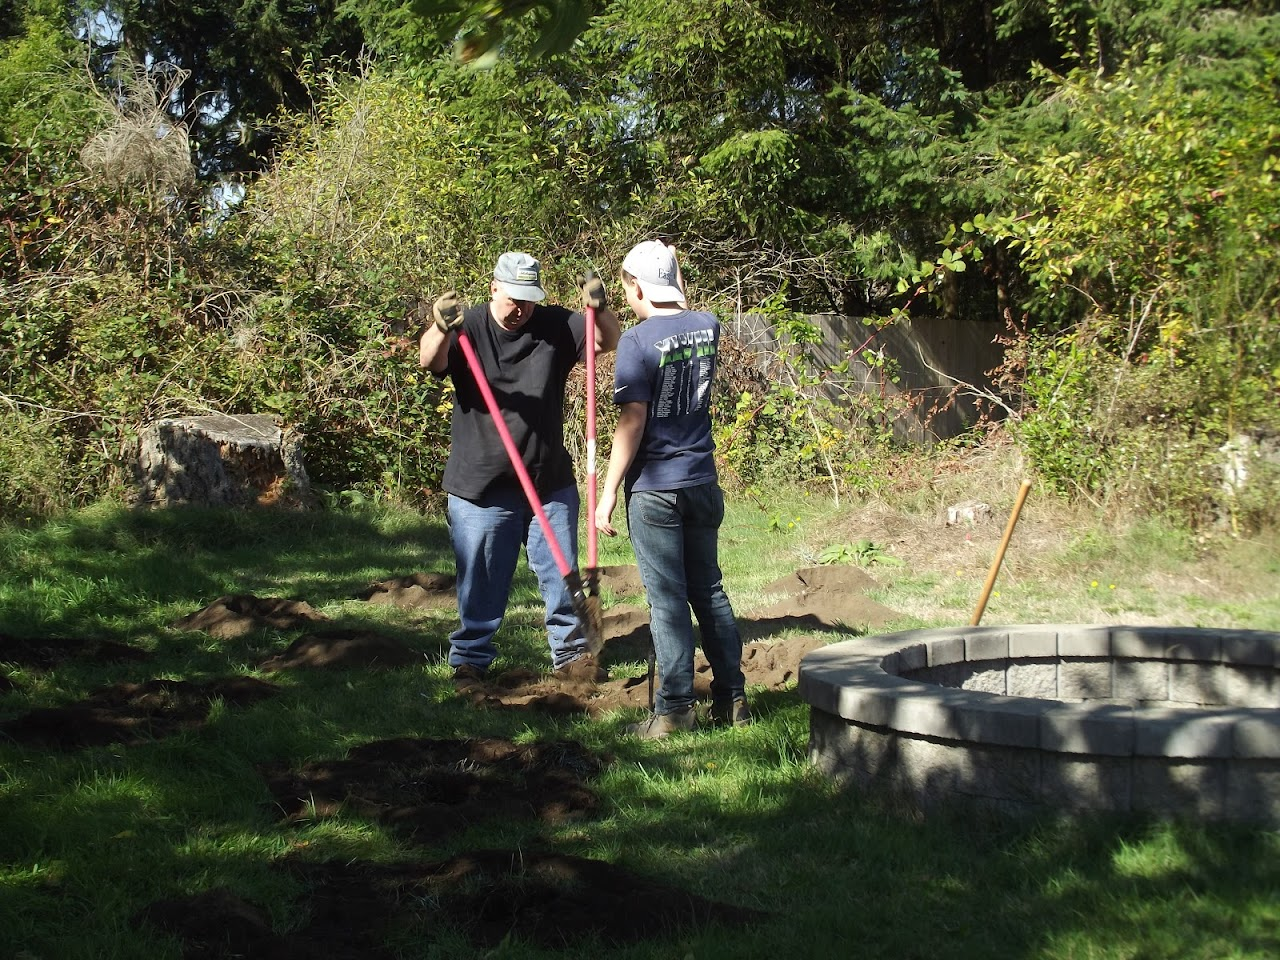 Carsons Eagle Project - October 2015 - DSCF3811.JPG